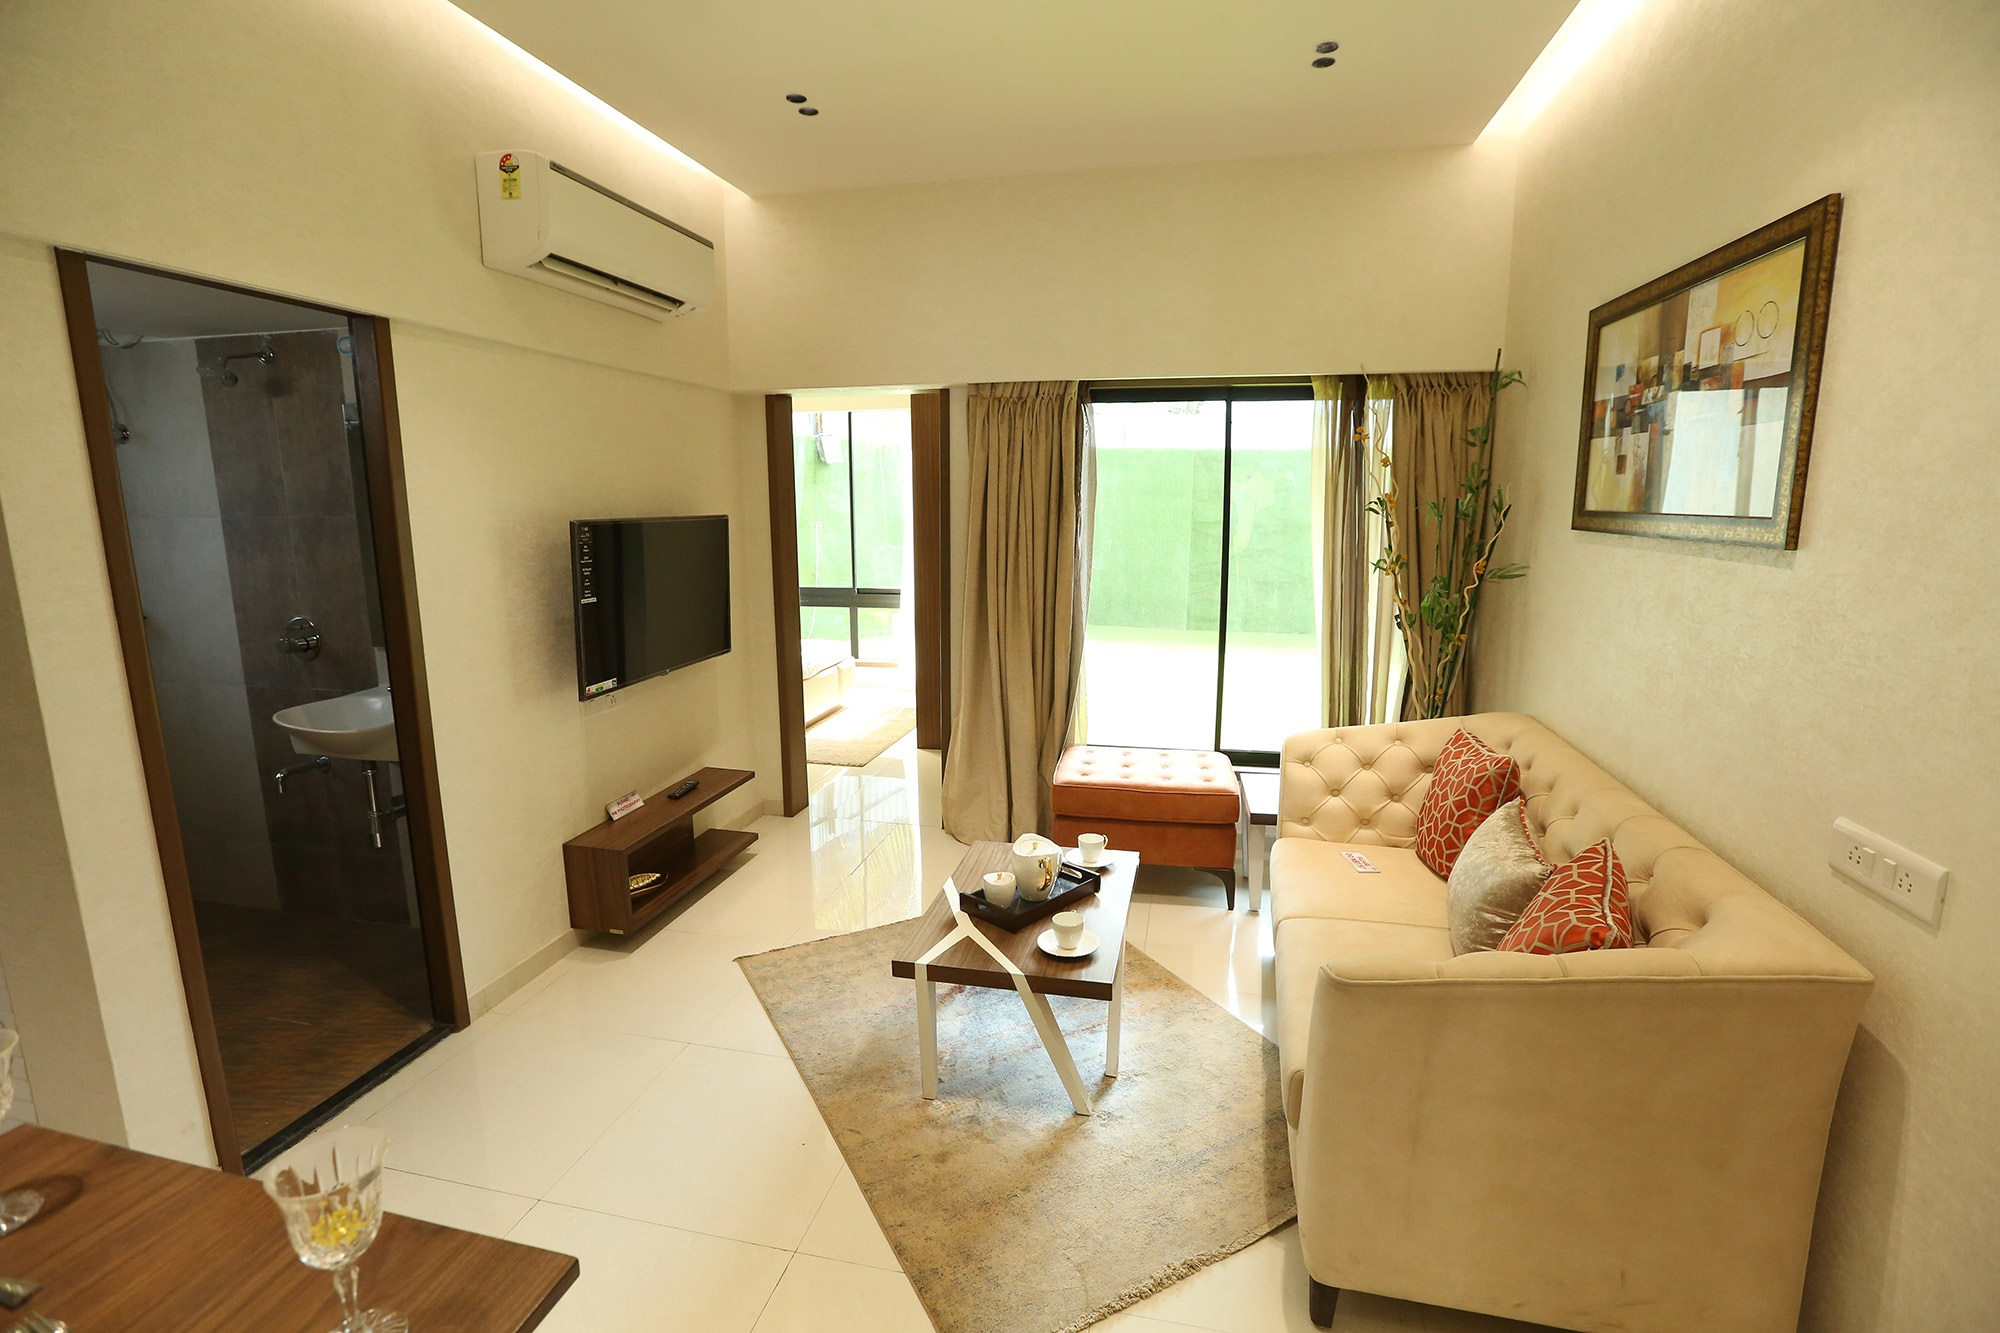 chandak nishchay apartment interiors9